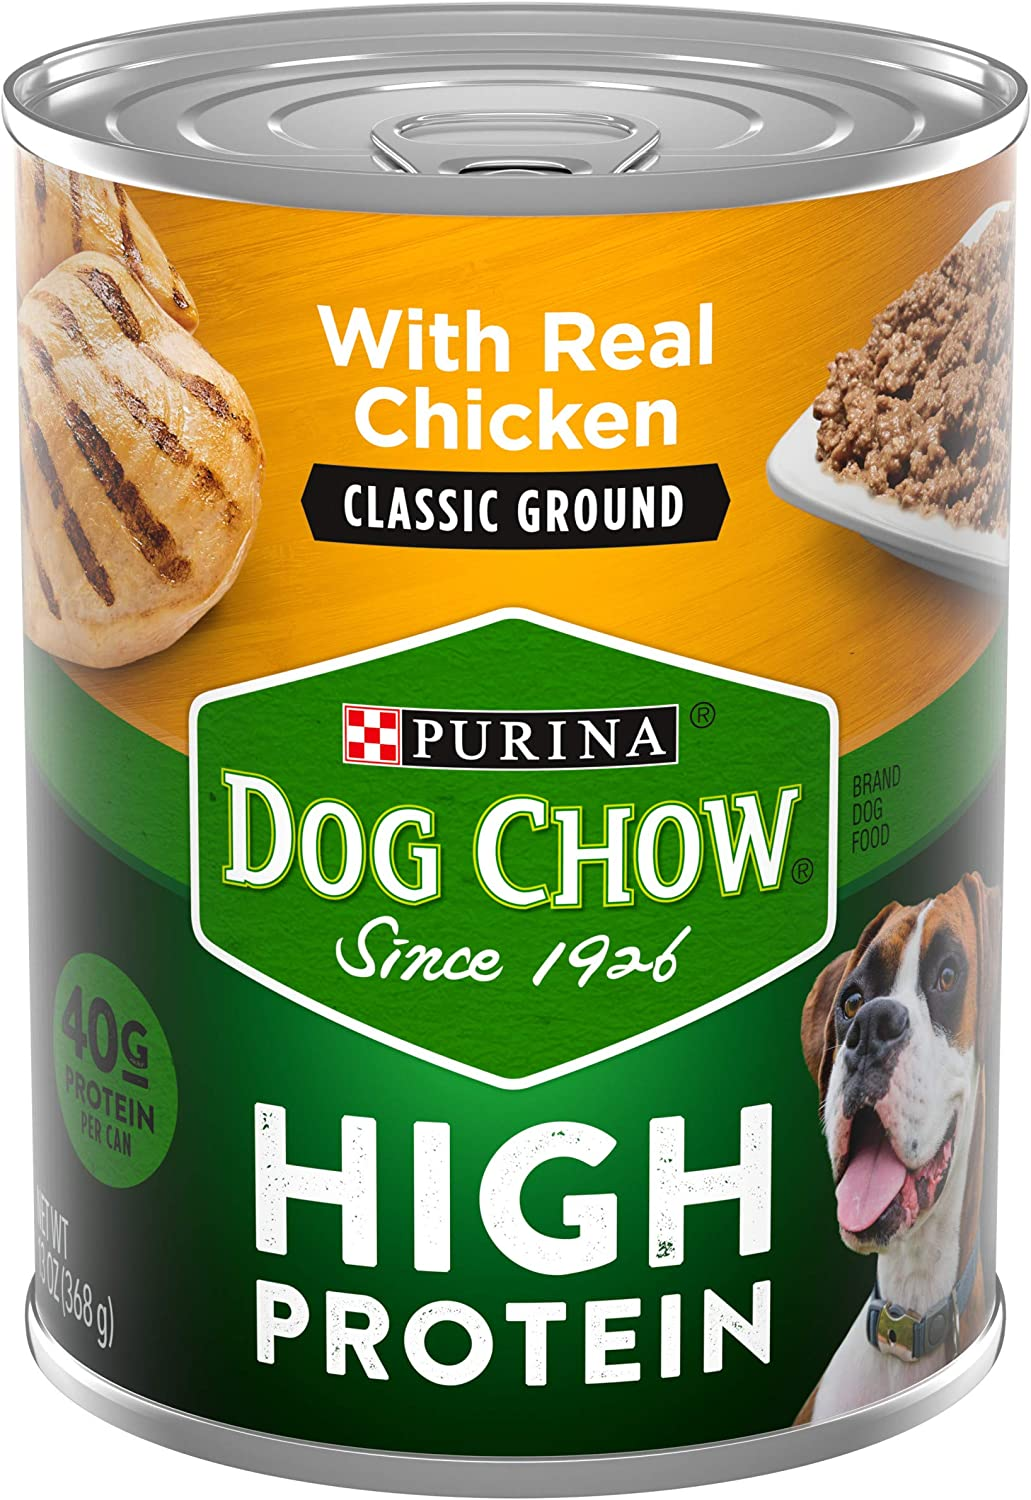 Purina Dog Chow High Protein Pate Wet Dog Food, High Protein With Real Chicken - (12) 13 oz. Cans